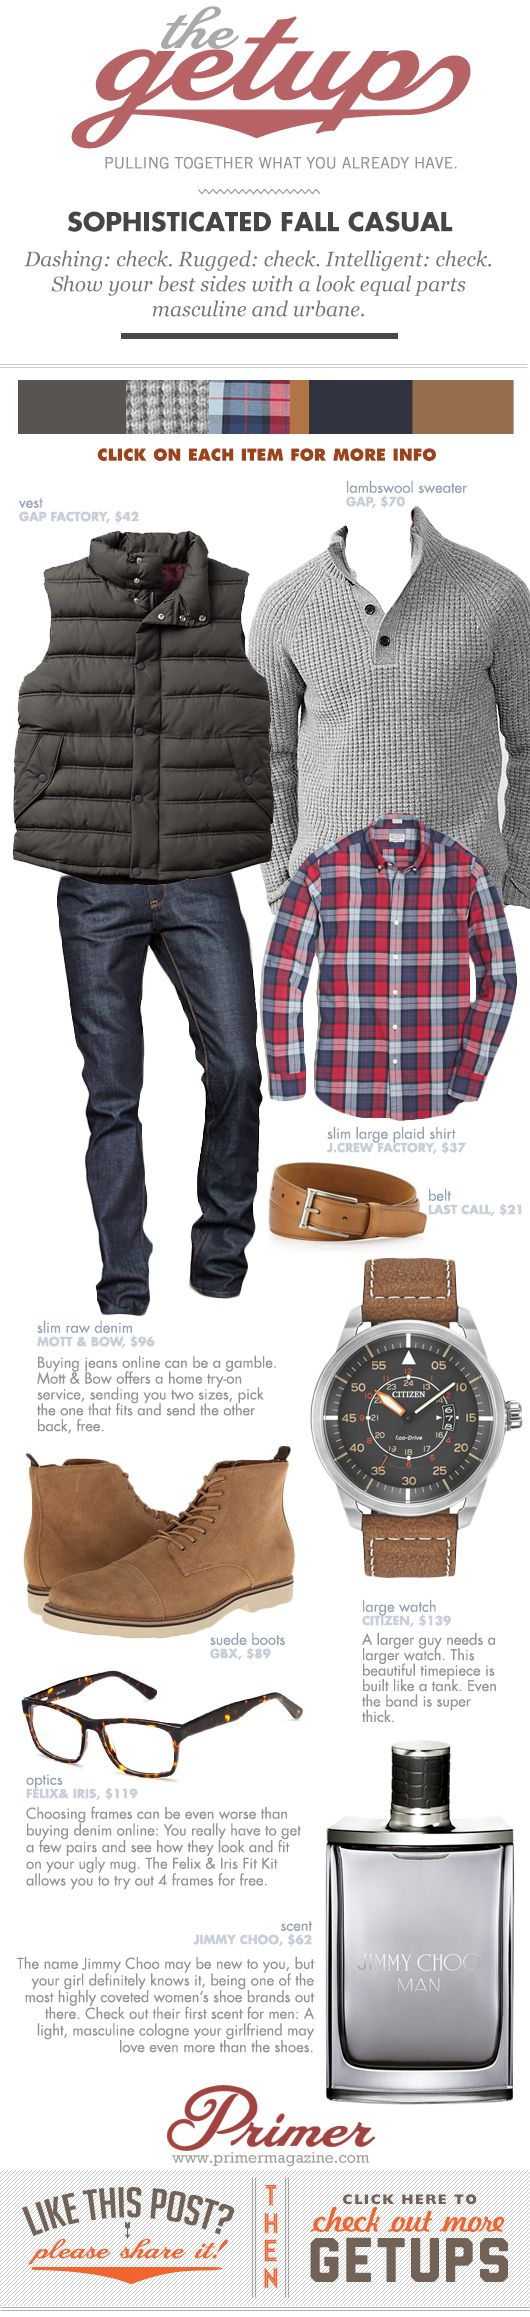 #FallinStyle The Getup: Sophisticated Fall Casual - Primer